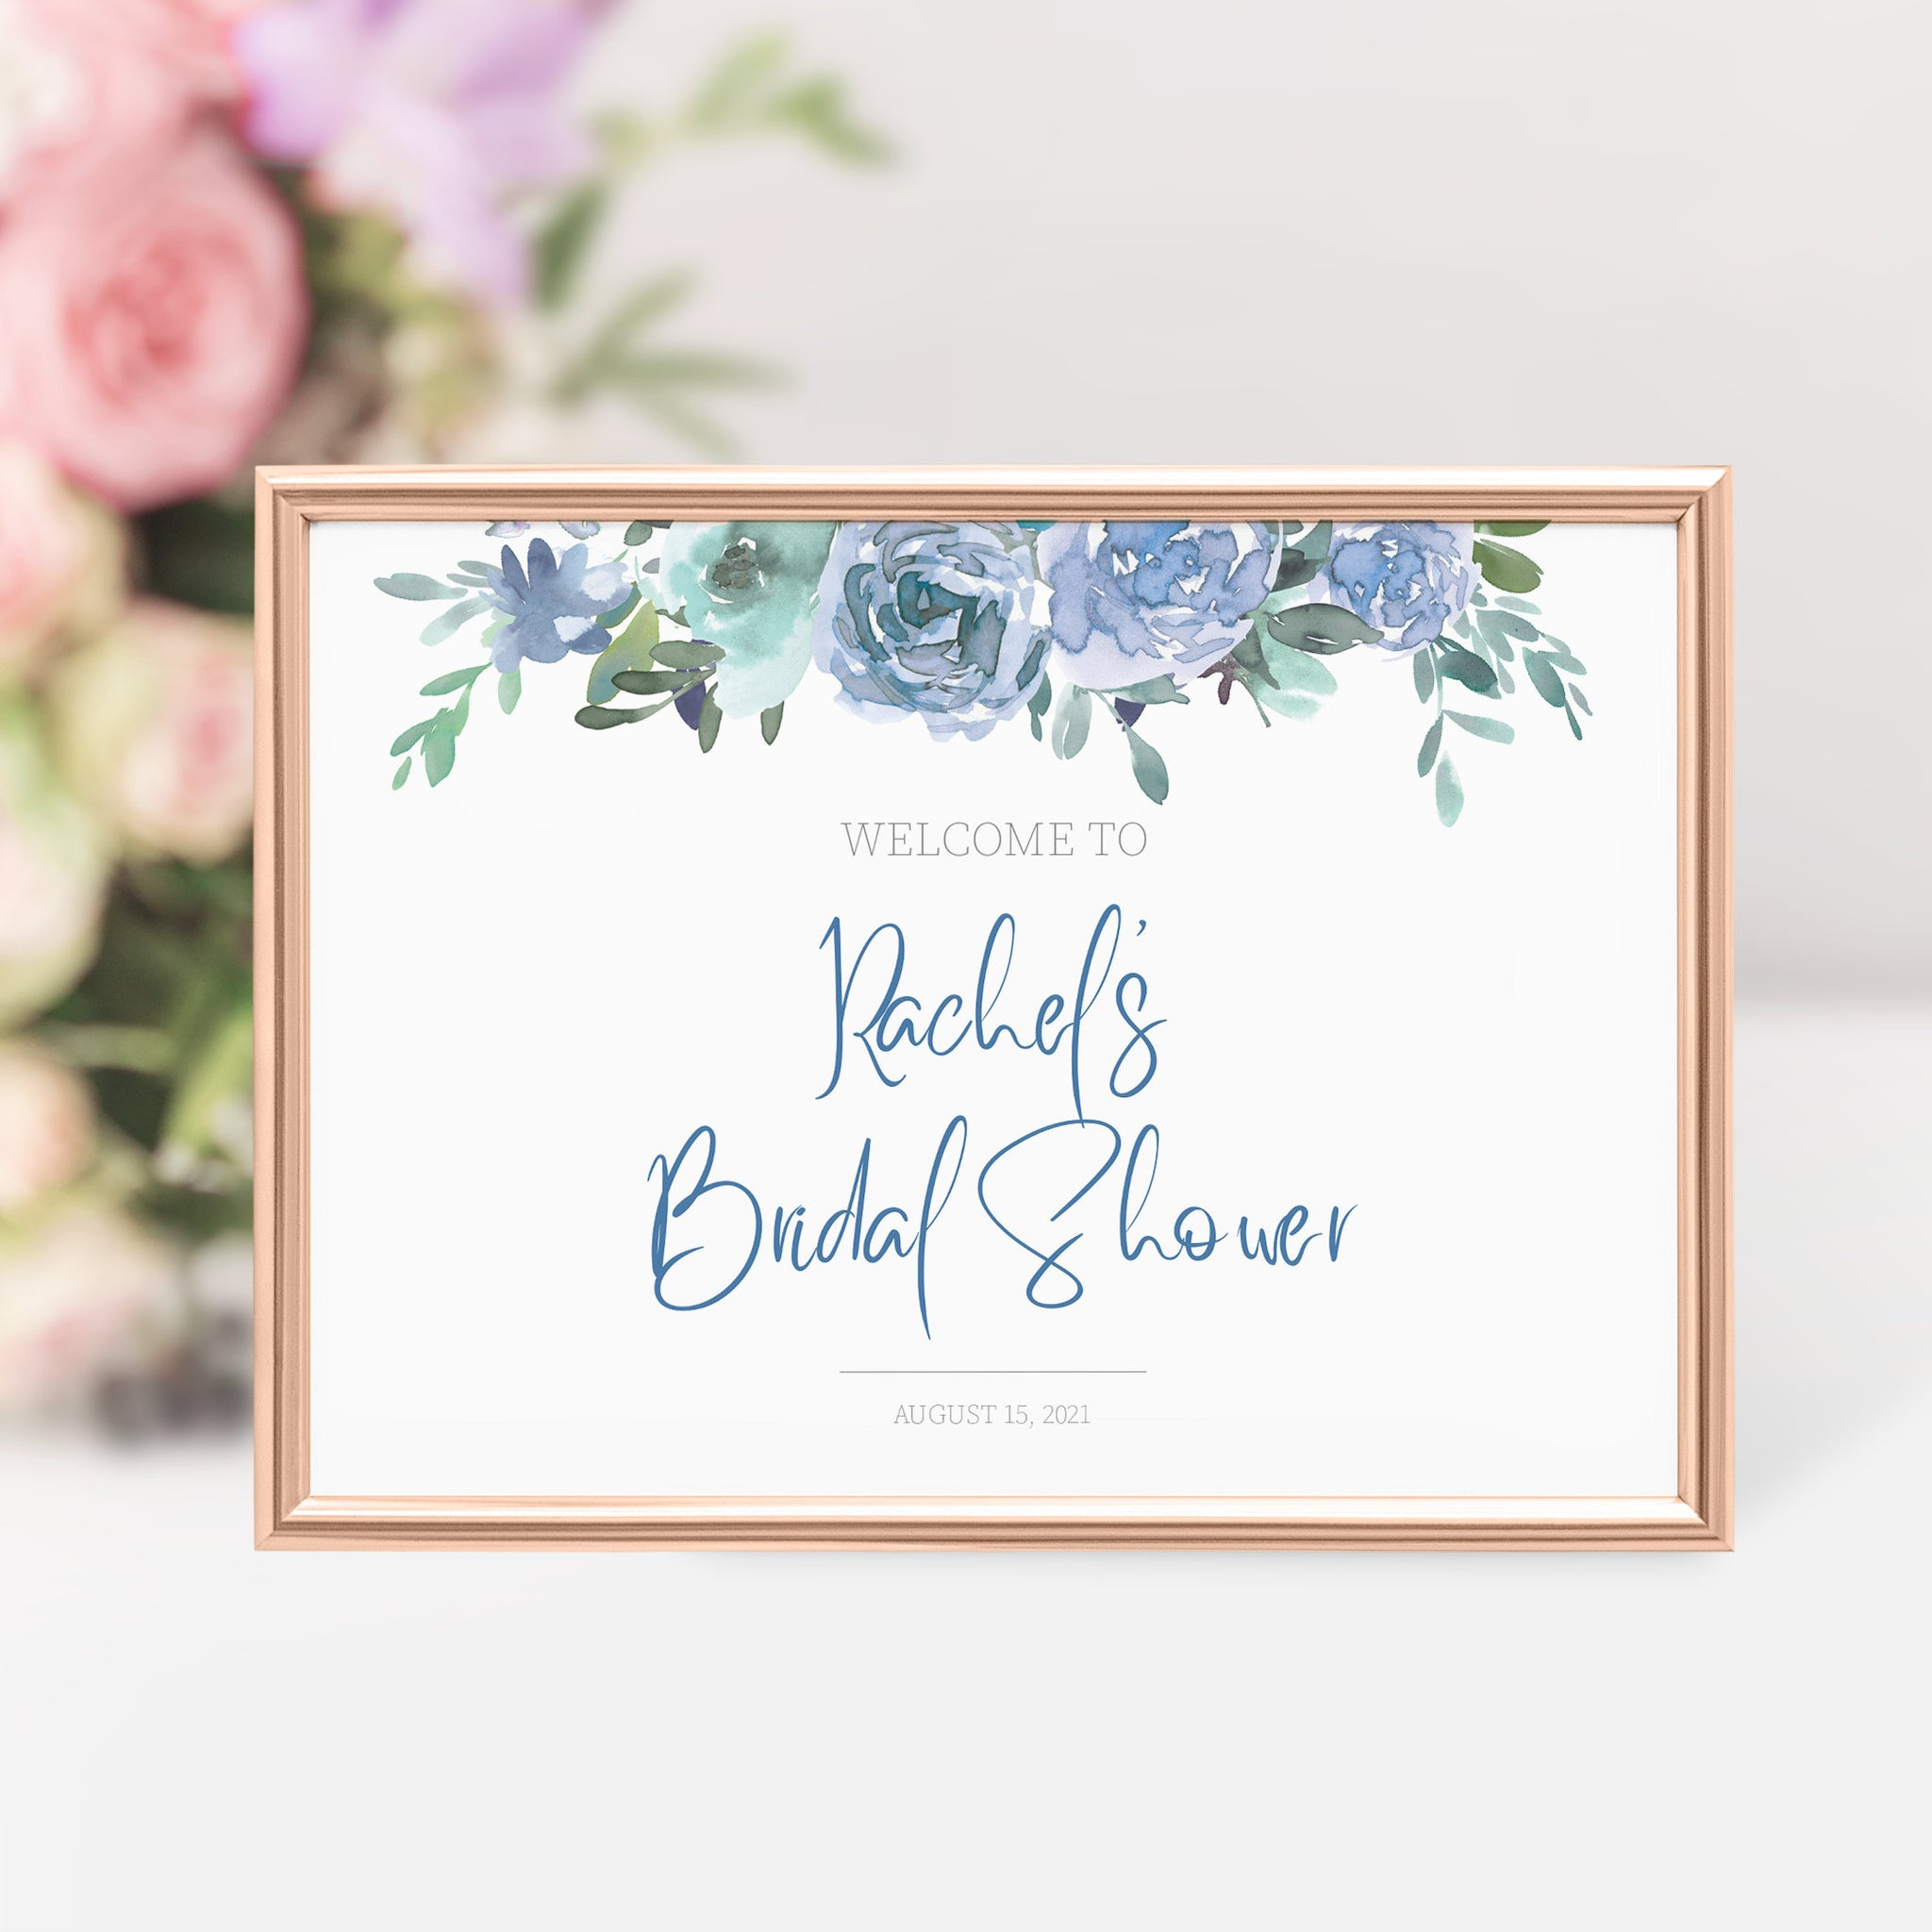 Personalized Bridal Shower Welcome Sign Template, Large Welcome Sign Printable, Floral Bridal Shower Shower Sign, DIGITAL DOWNLOAD BF100